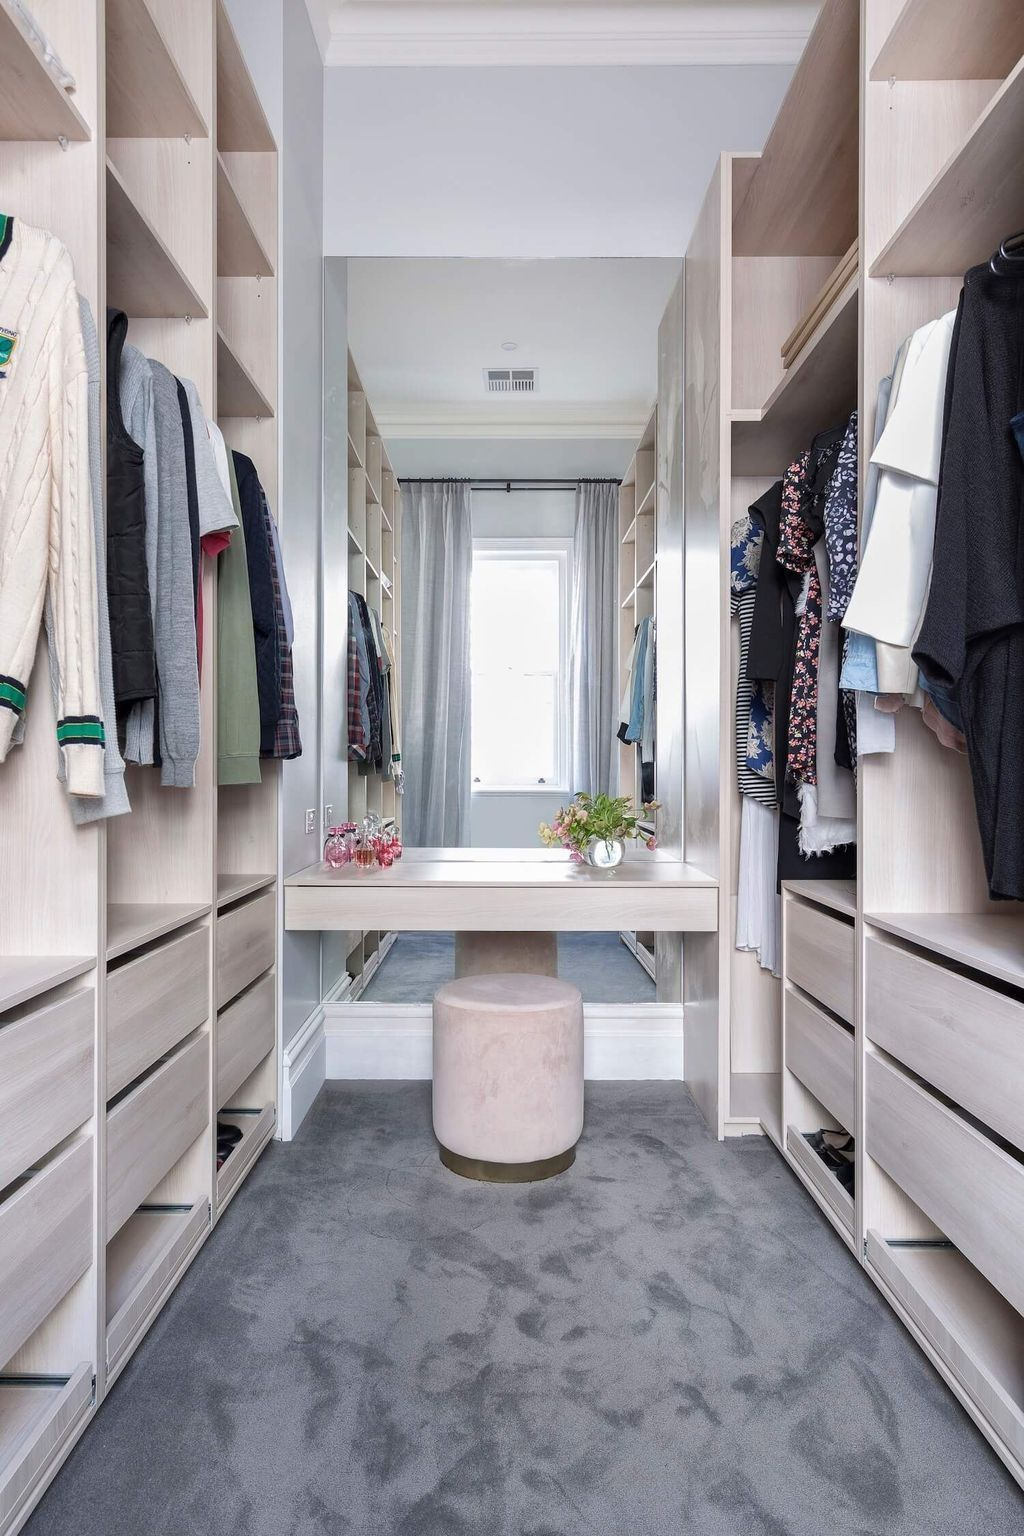 20 Beautiful Concept Of A Wardrobe Ideas For Bedroom In 2020